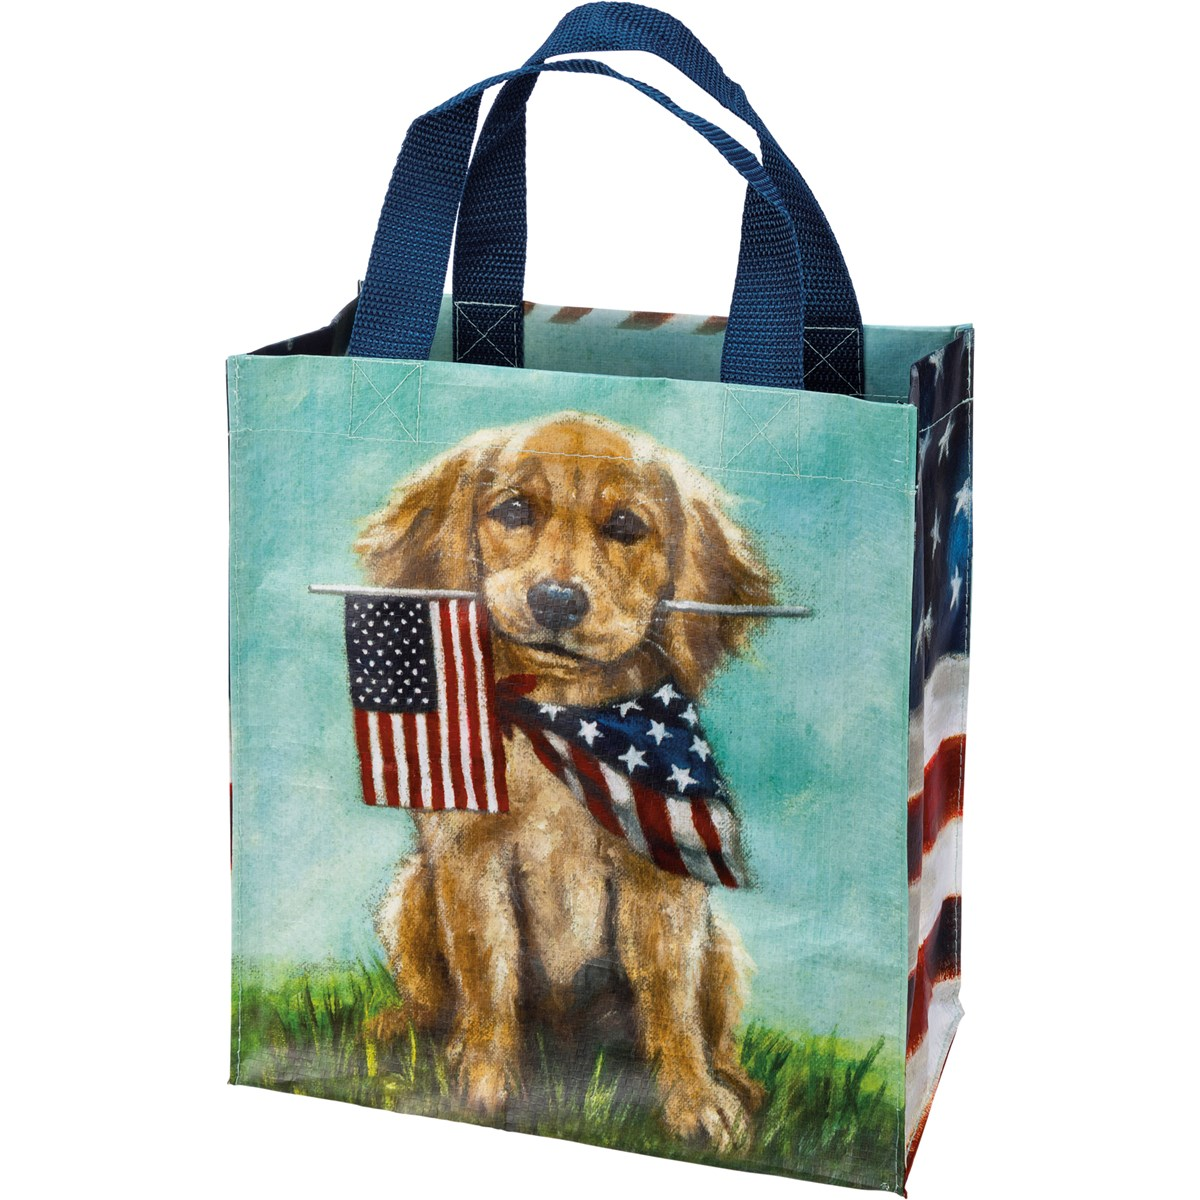 "Daily Tote - Dogs And Flags - 8.75"" x 10.25"" x 4.75"" - Post-Consumer Material, Nylon"